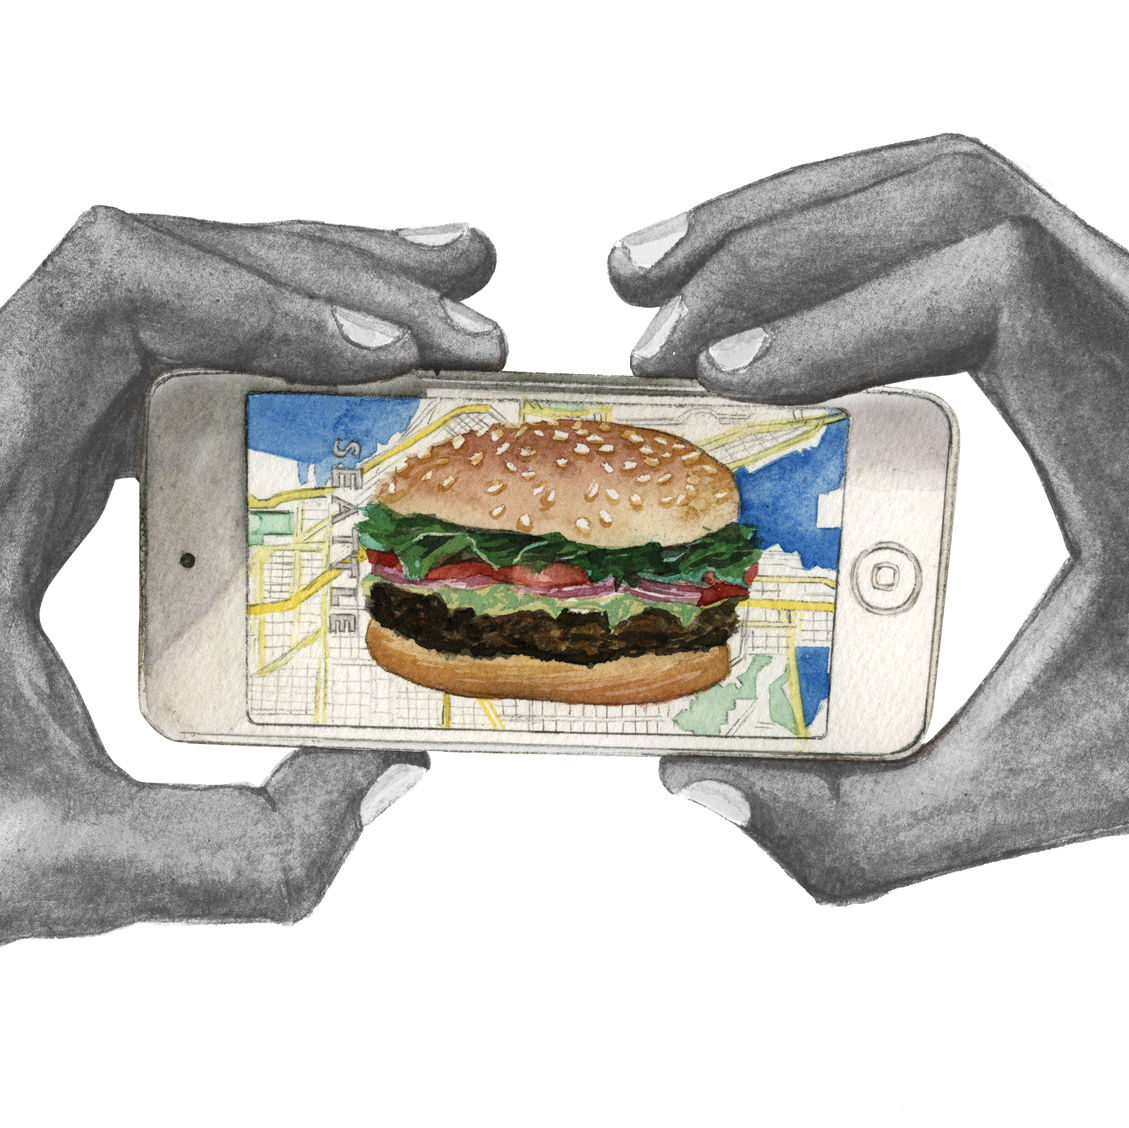 Hands phone burger map001 kjkdr0